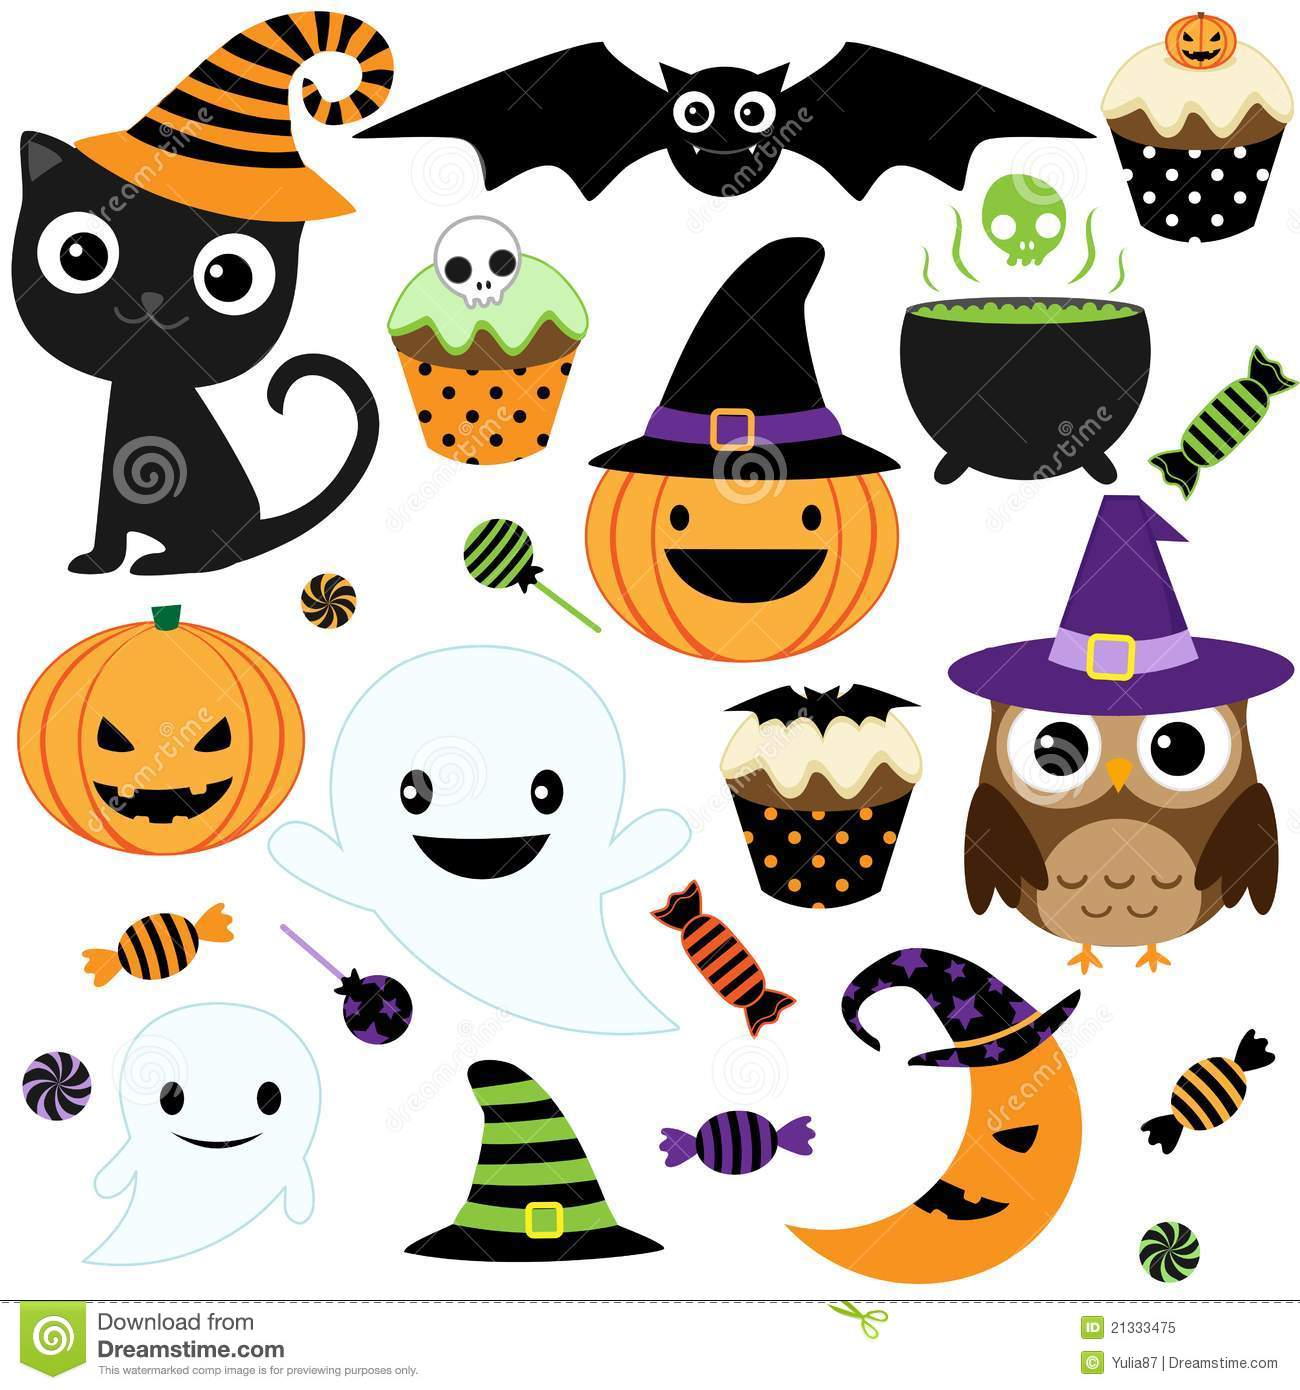 Cute Halloween Party Royalty Free Stock Photo - Image: 21333475